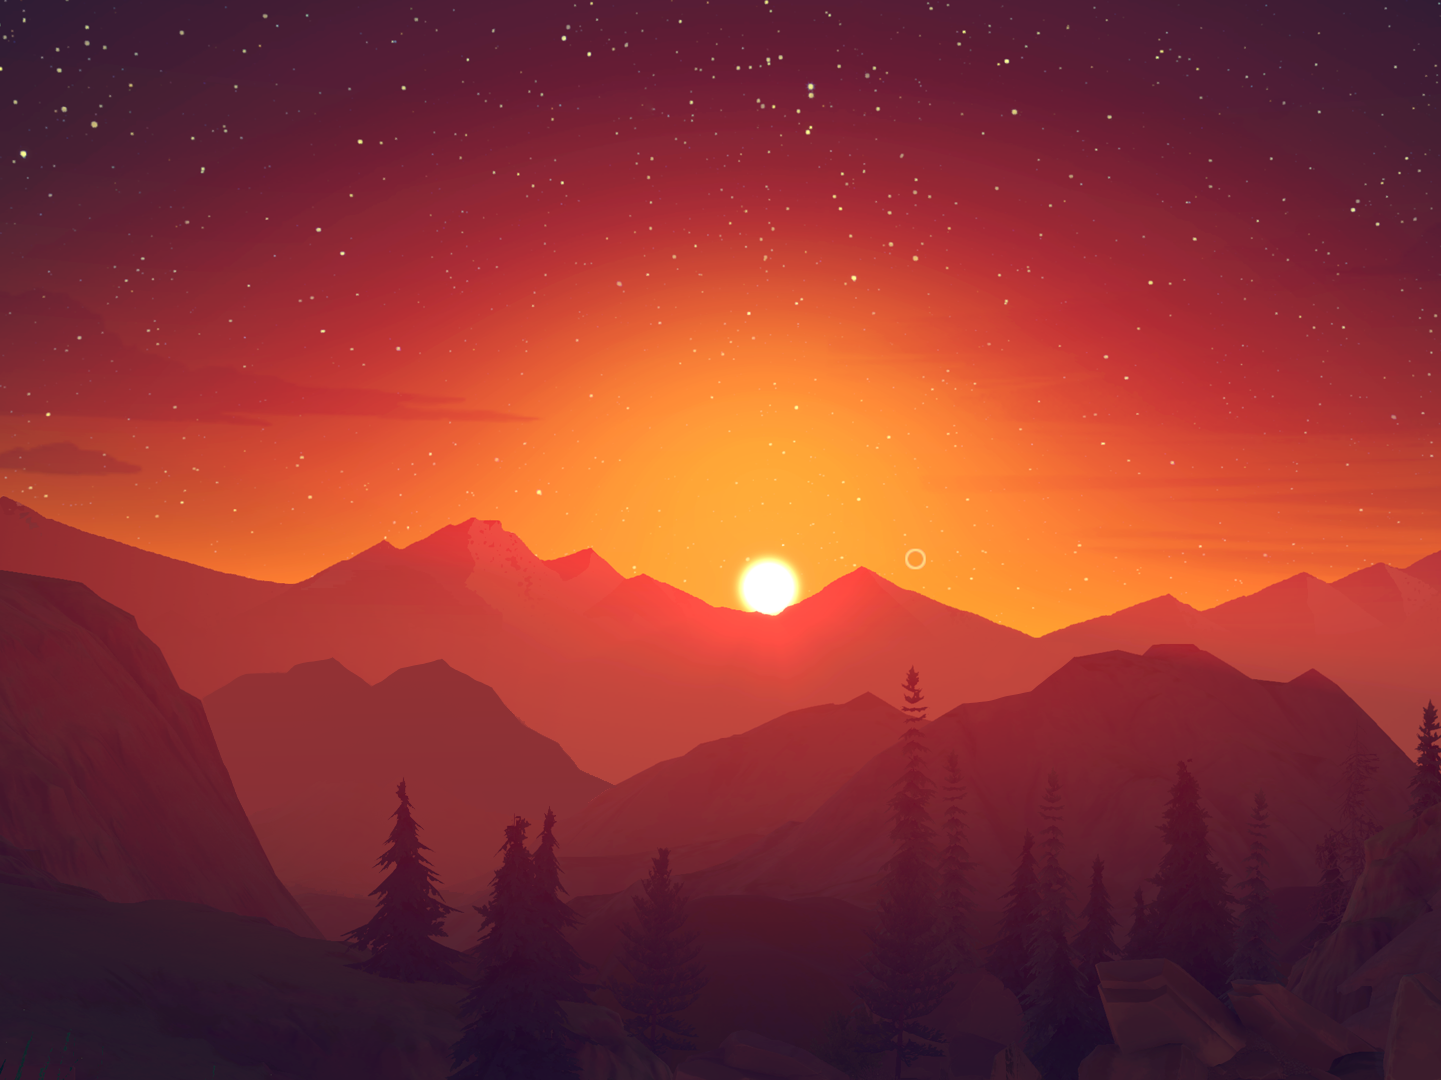 5 Things a 'Firewatch' Movie Needs to Have